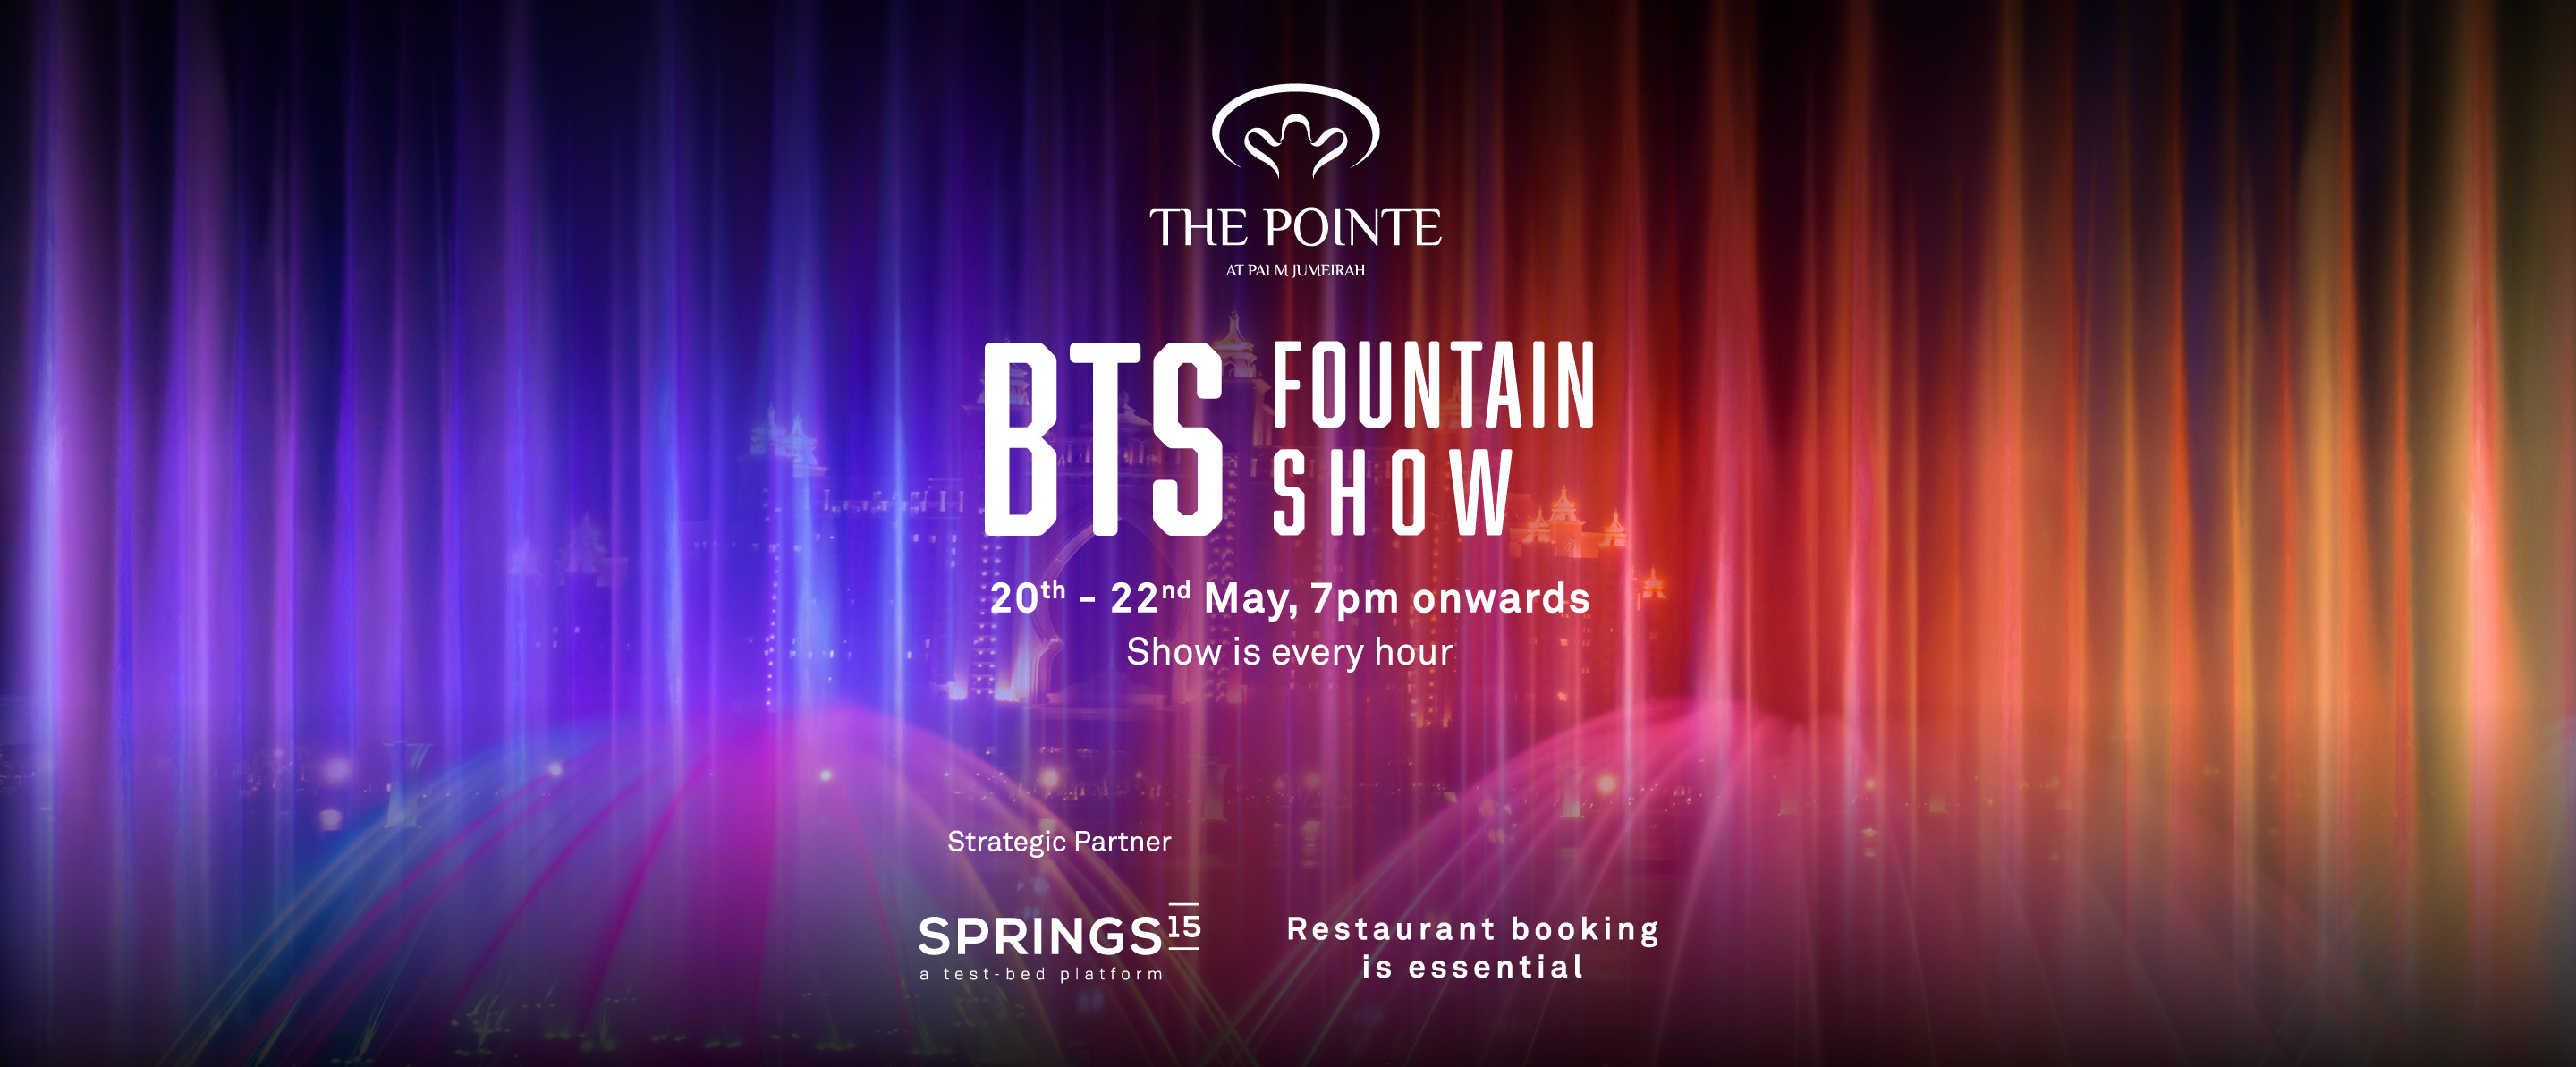 Get your K-Pop dose this weekend  at The Pointe